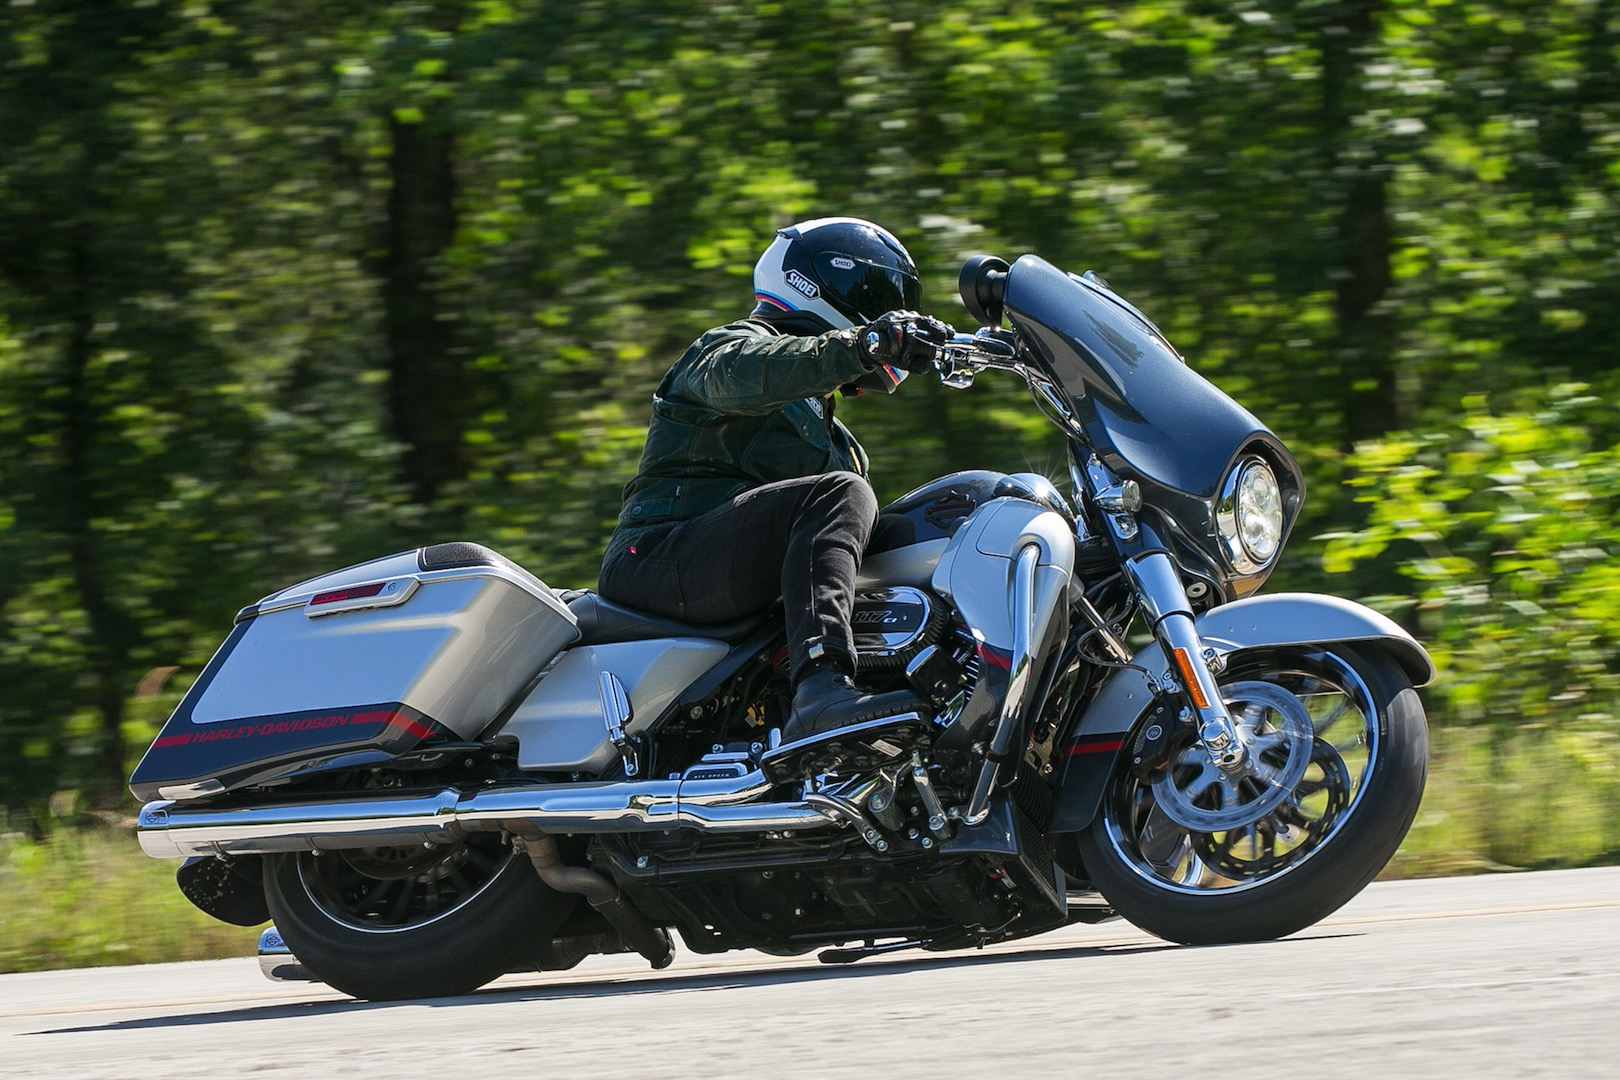 Harley Davidson Touring With 2019 Harley Davidson Cvo Street Glide Review 14 Fast Facts